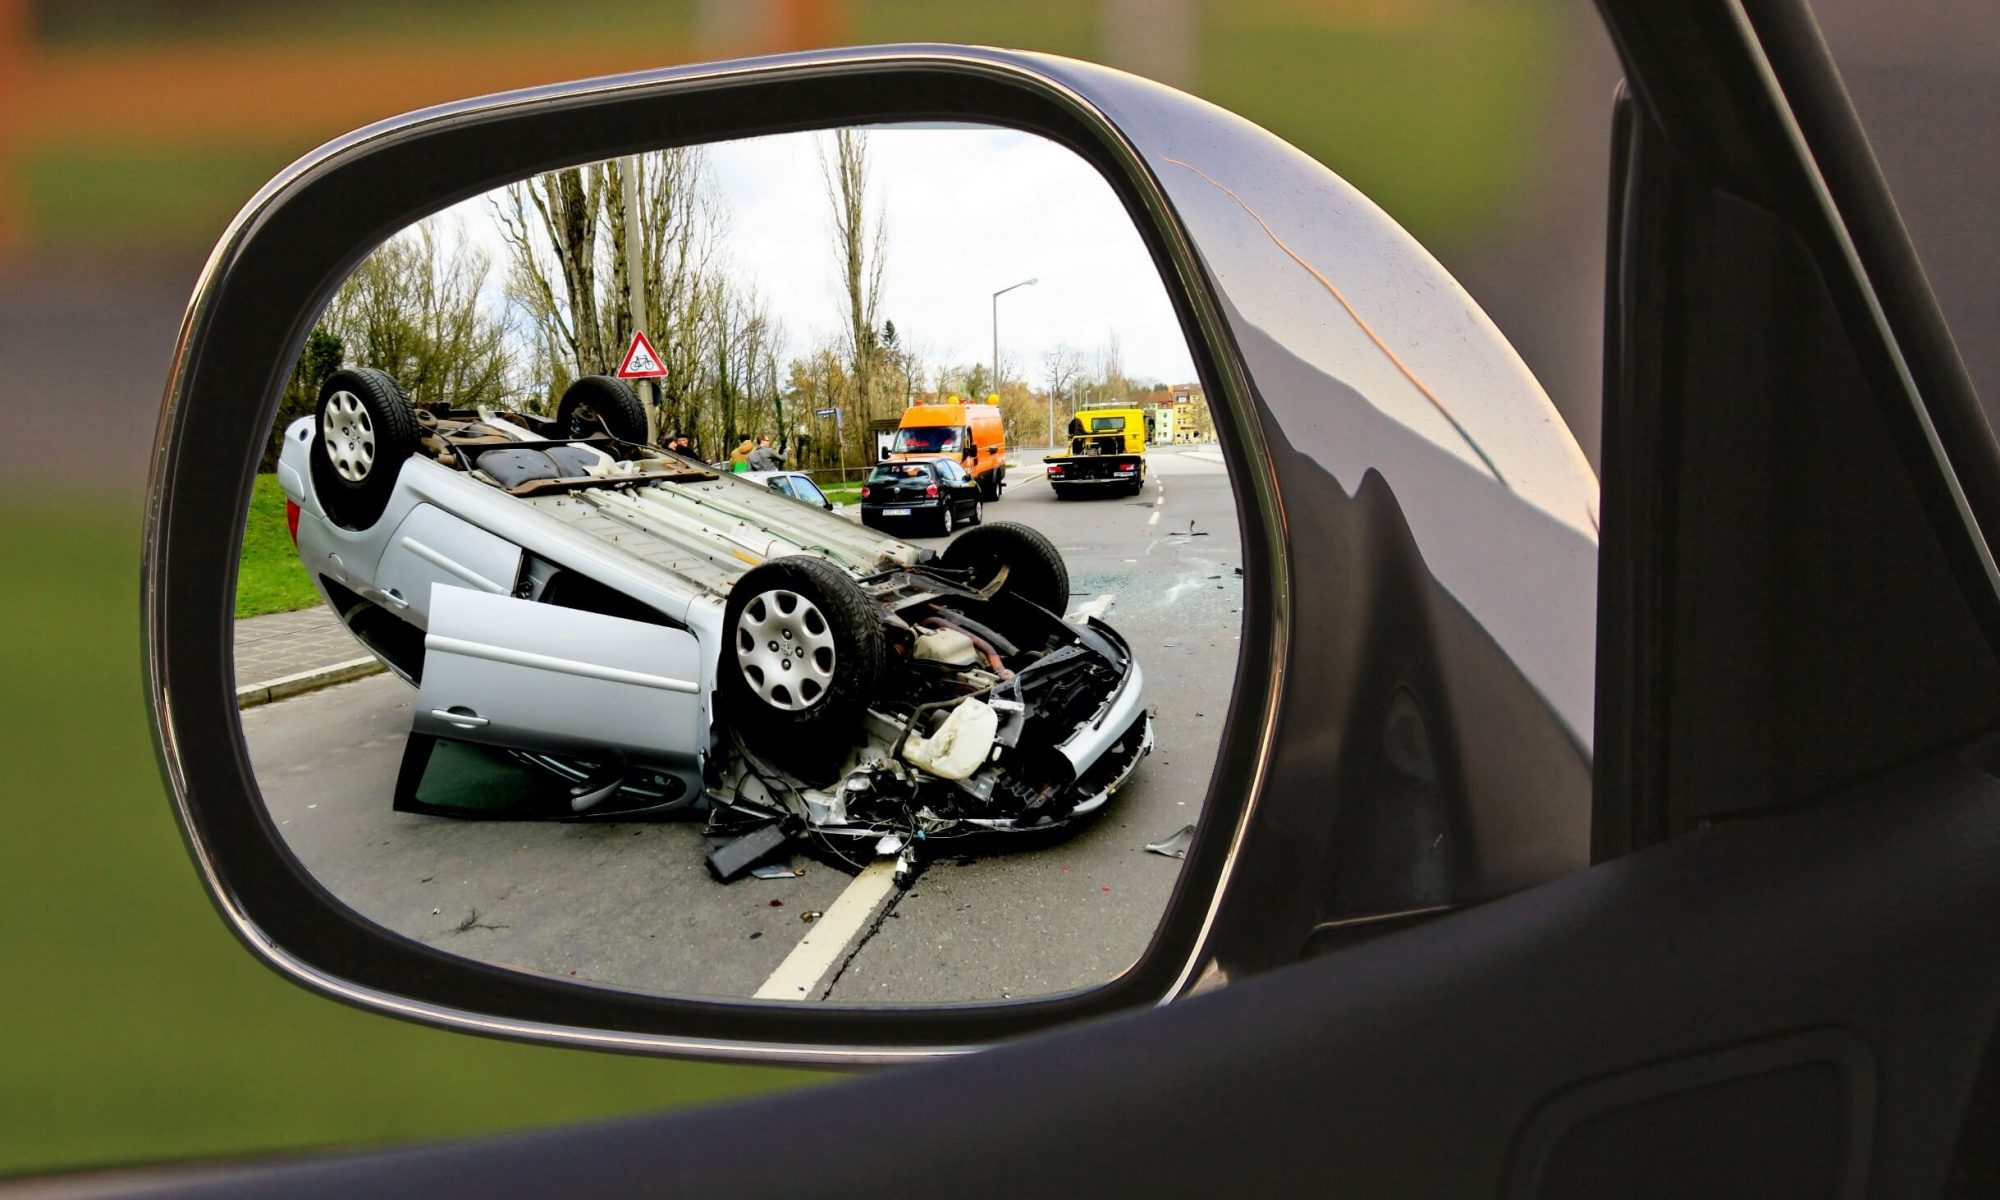 Find the best car accident doctor in Houston after a crash